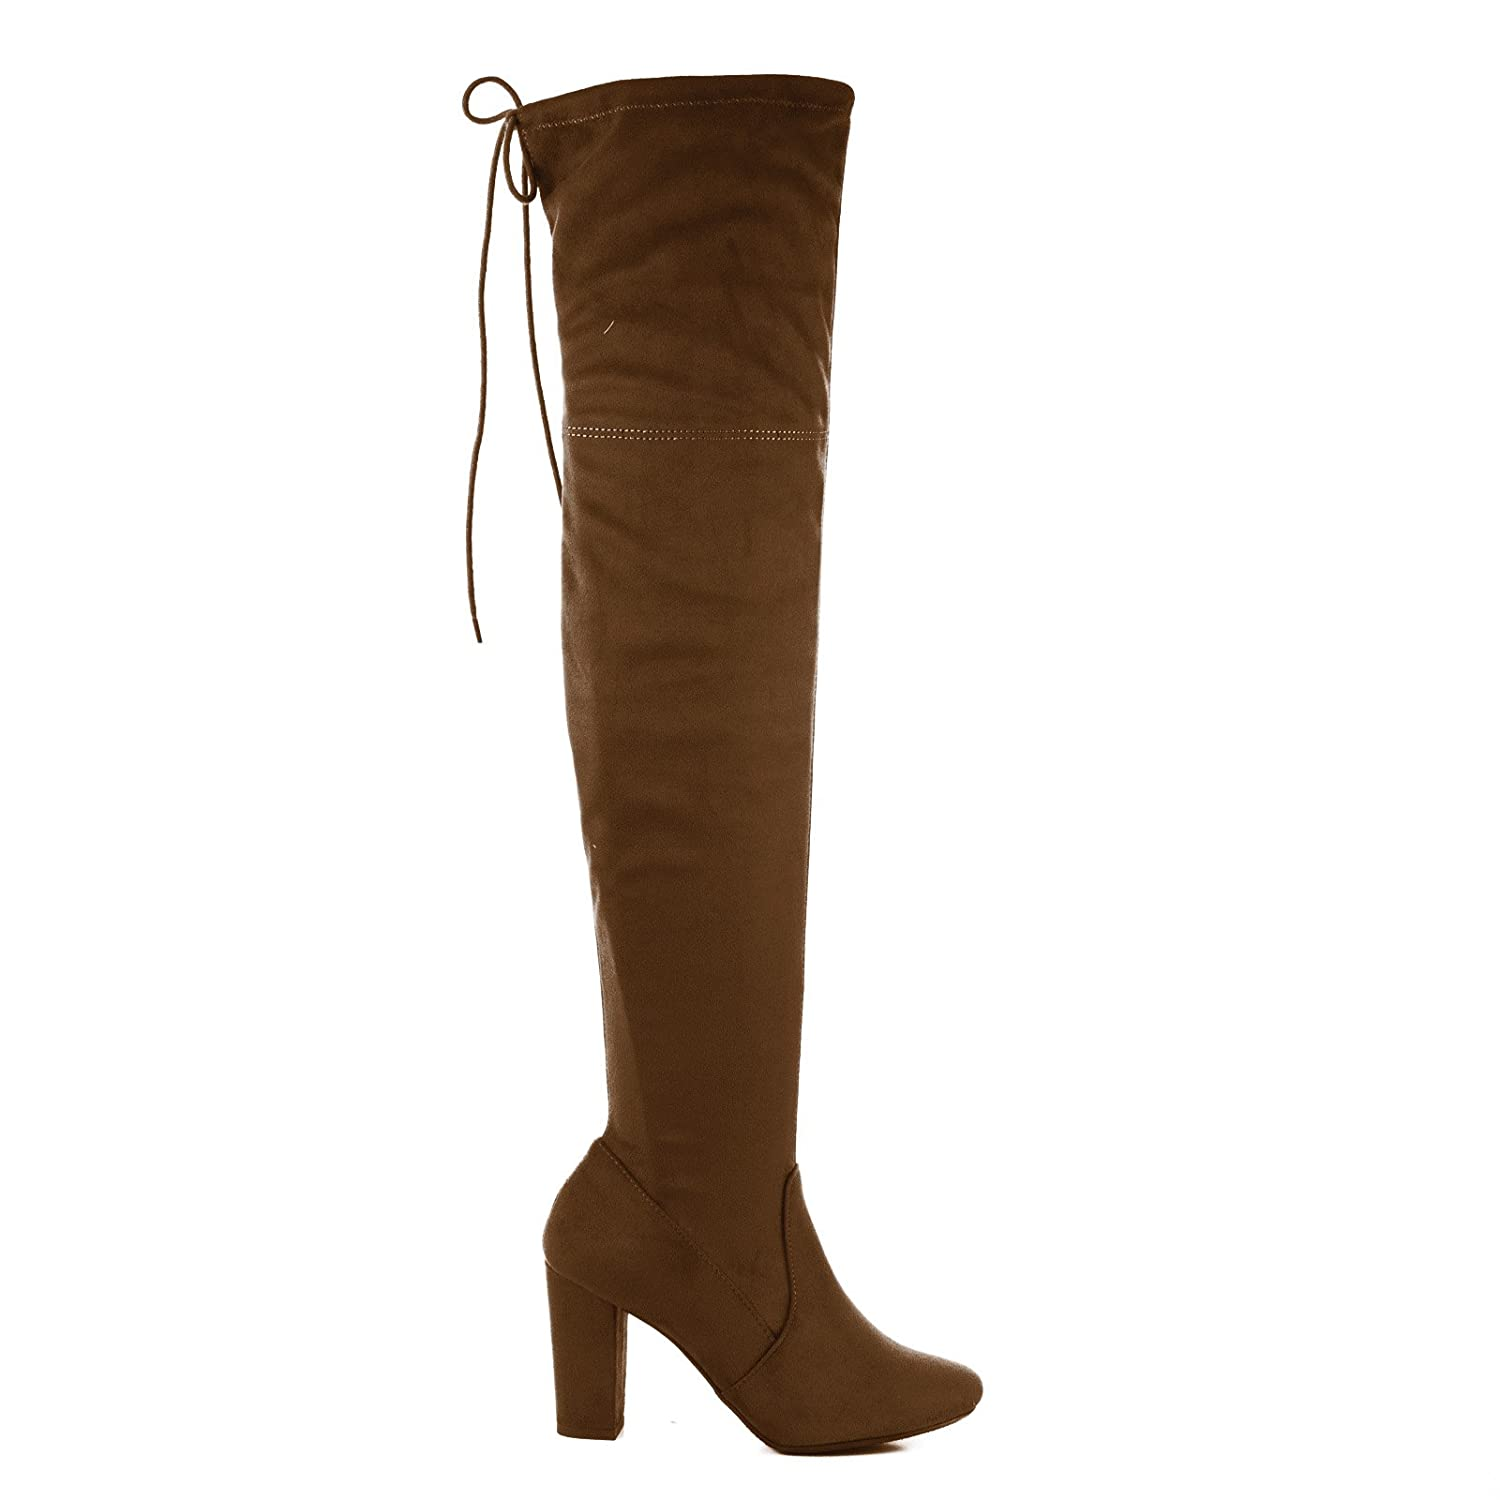 Snivy Cognac OTK Over The Knee Thigh High Slouchy Boots w/ Back Lace Tie & Block Heel -9